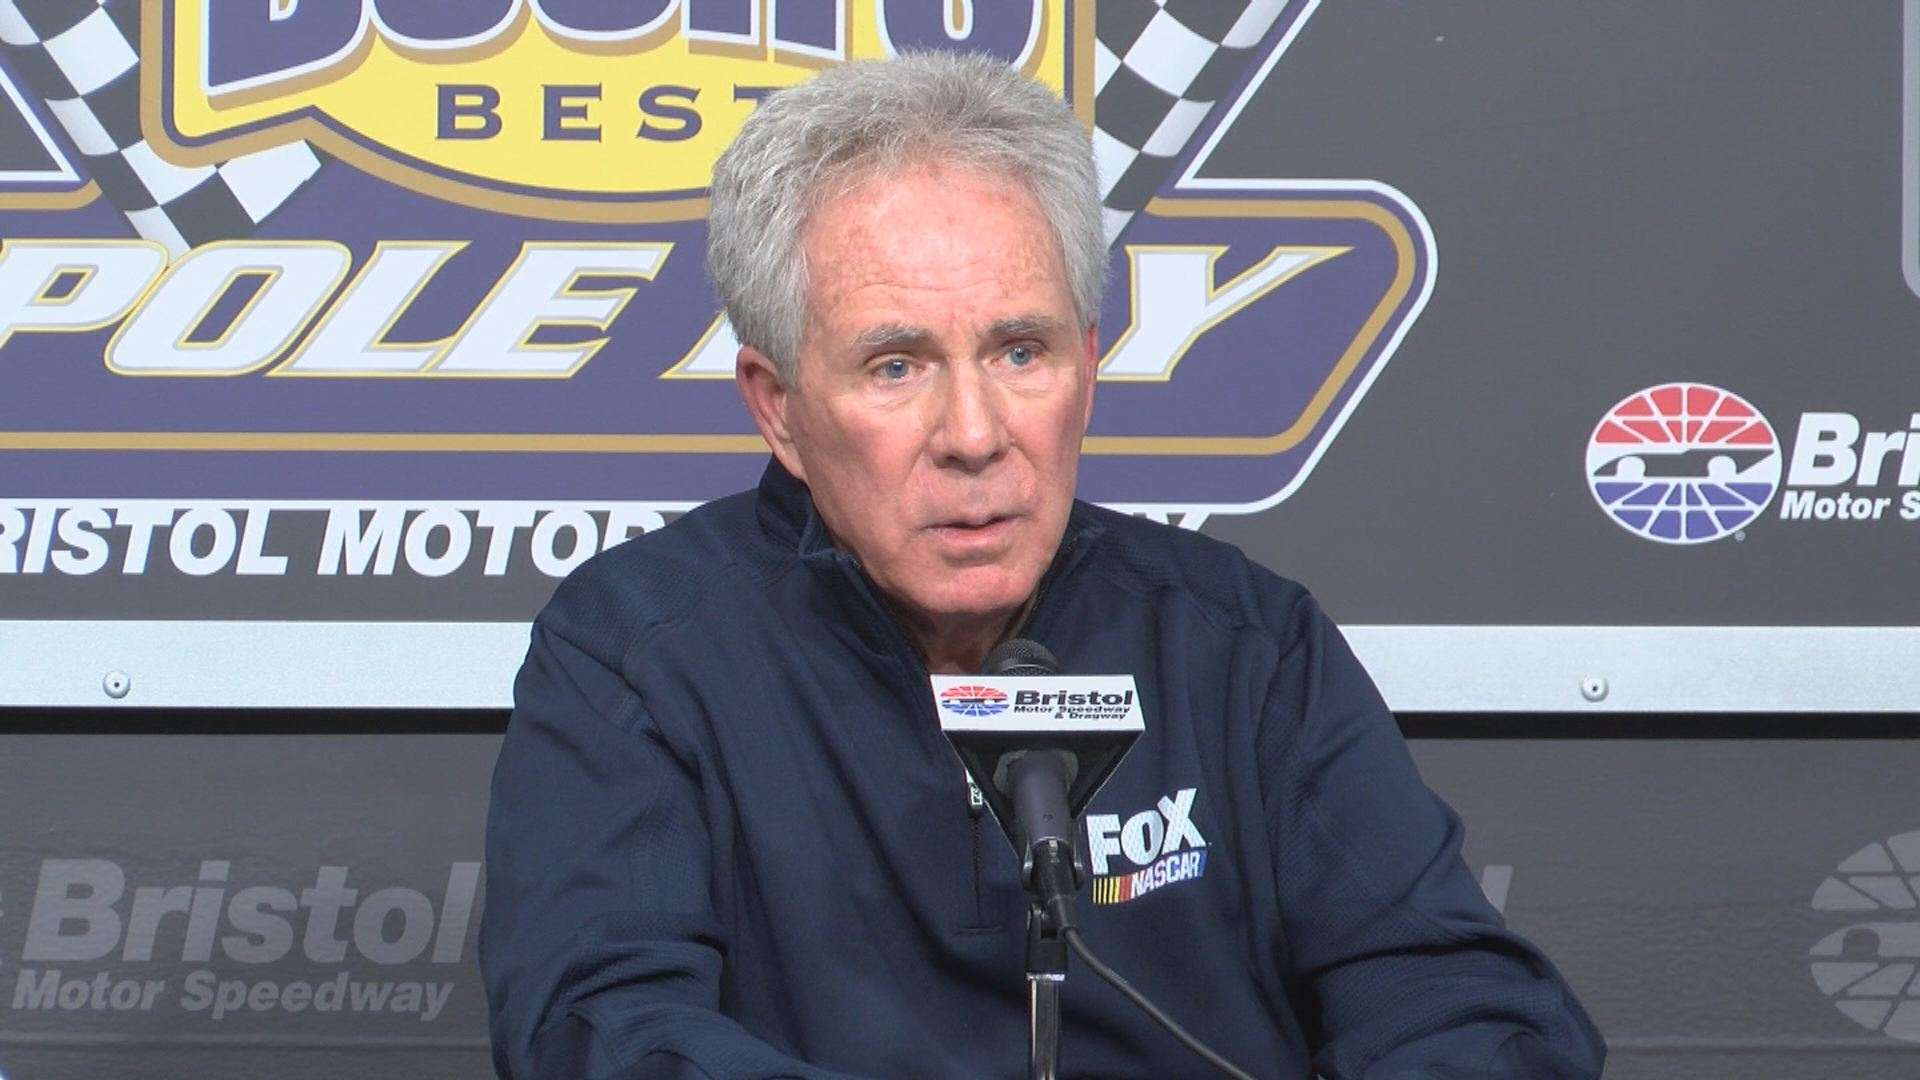 Darrell Waltrip set to wave the green flag at Food City 500